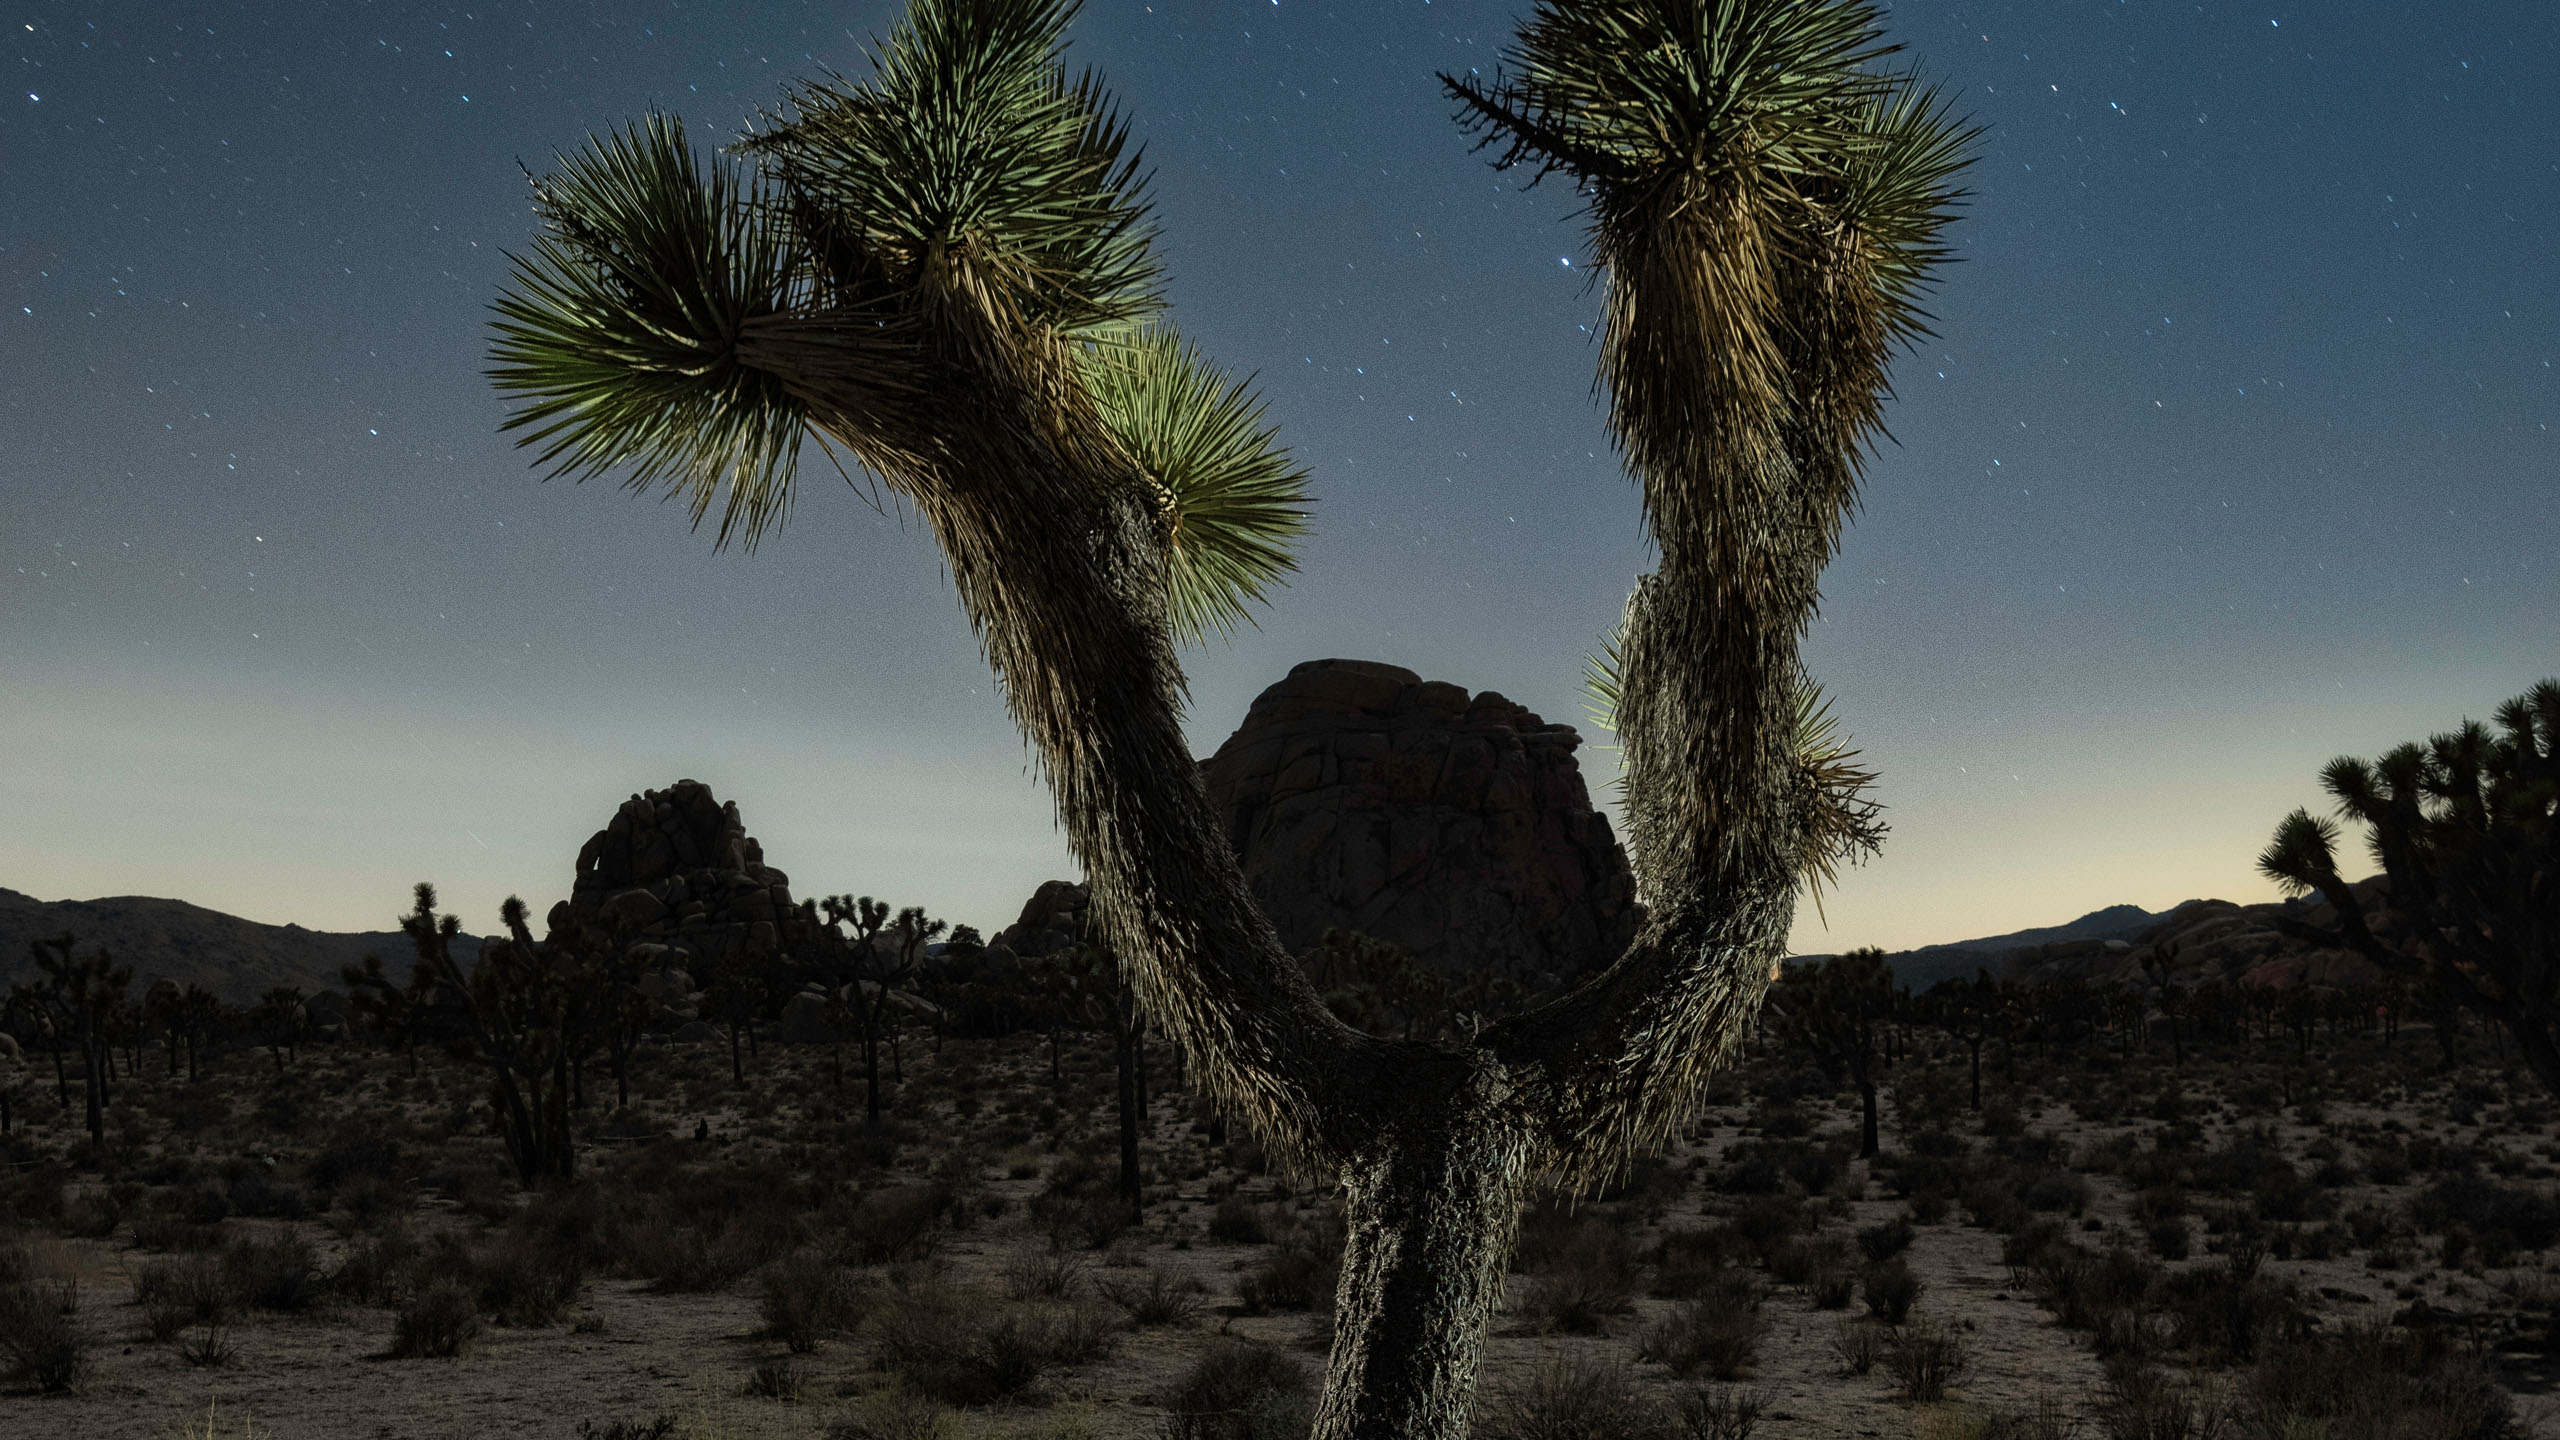 4013_kenlee_joshuatree_210320_2220_30sf71iso1600_wishbone-joshua-tree-sidelit 2560x1440 header photofocus